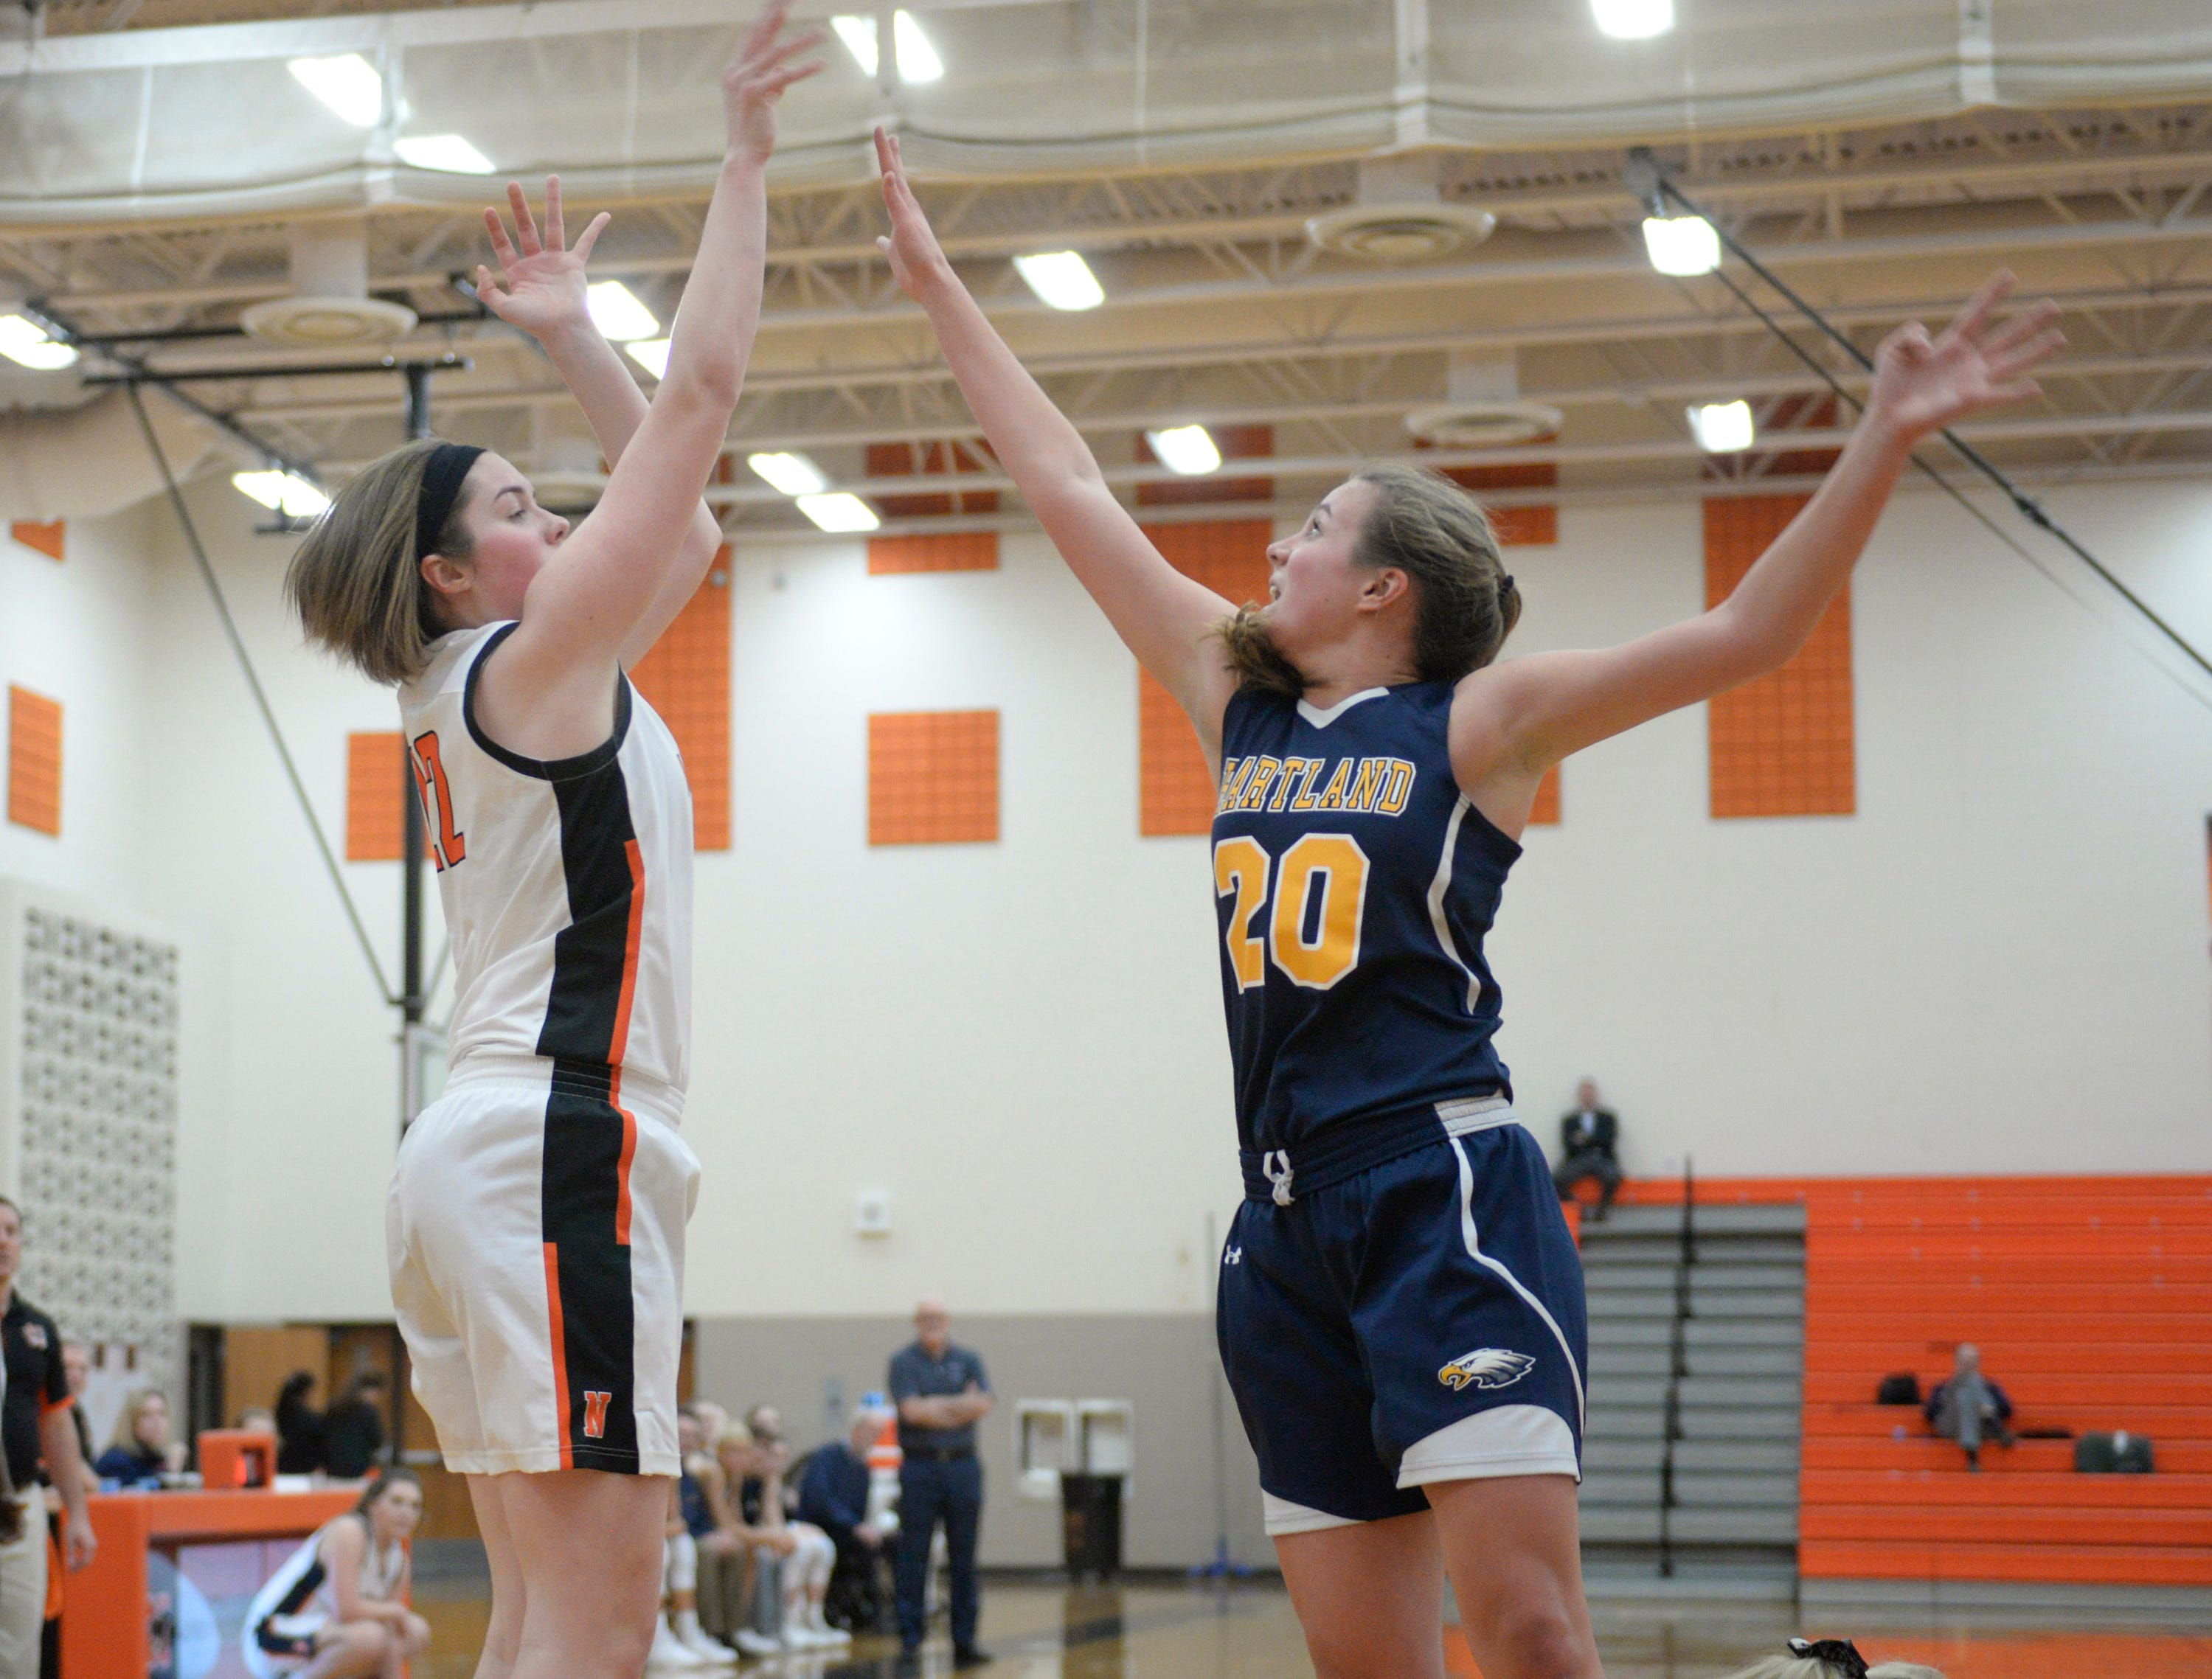 Northville's Sophia Jeromsky (21) gets a shot over Hartland's Lillee Gustafson (20) during a KLAA match up between the Mustangs and Eagles at Northville Jan. 8, 2019